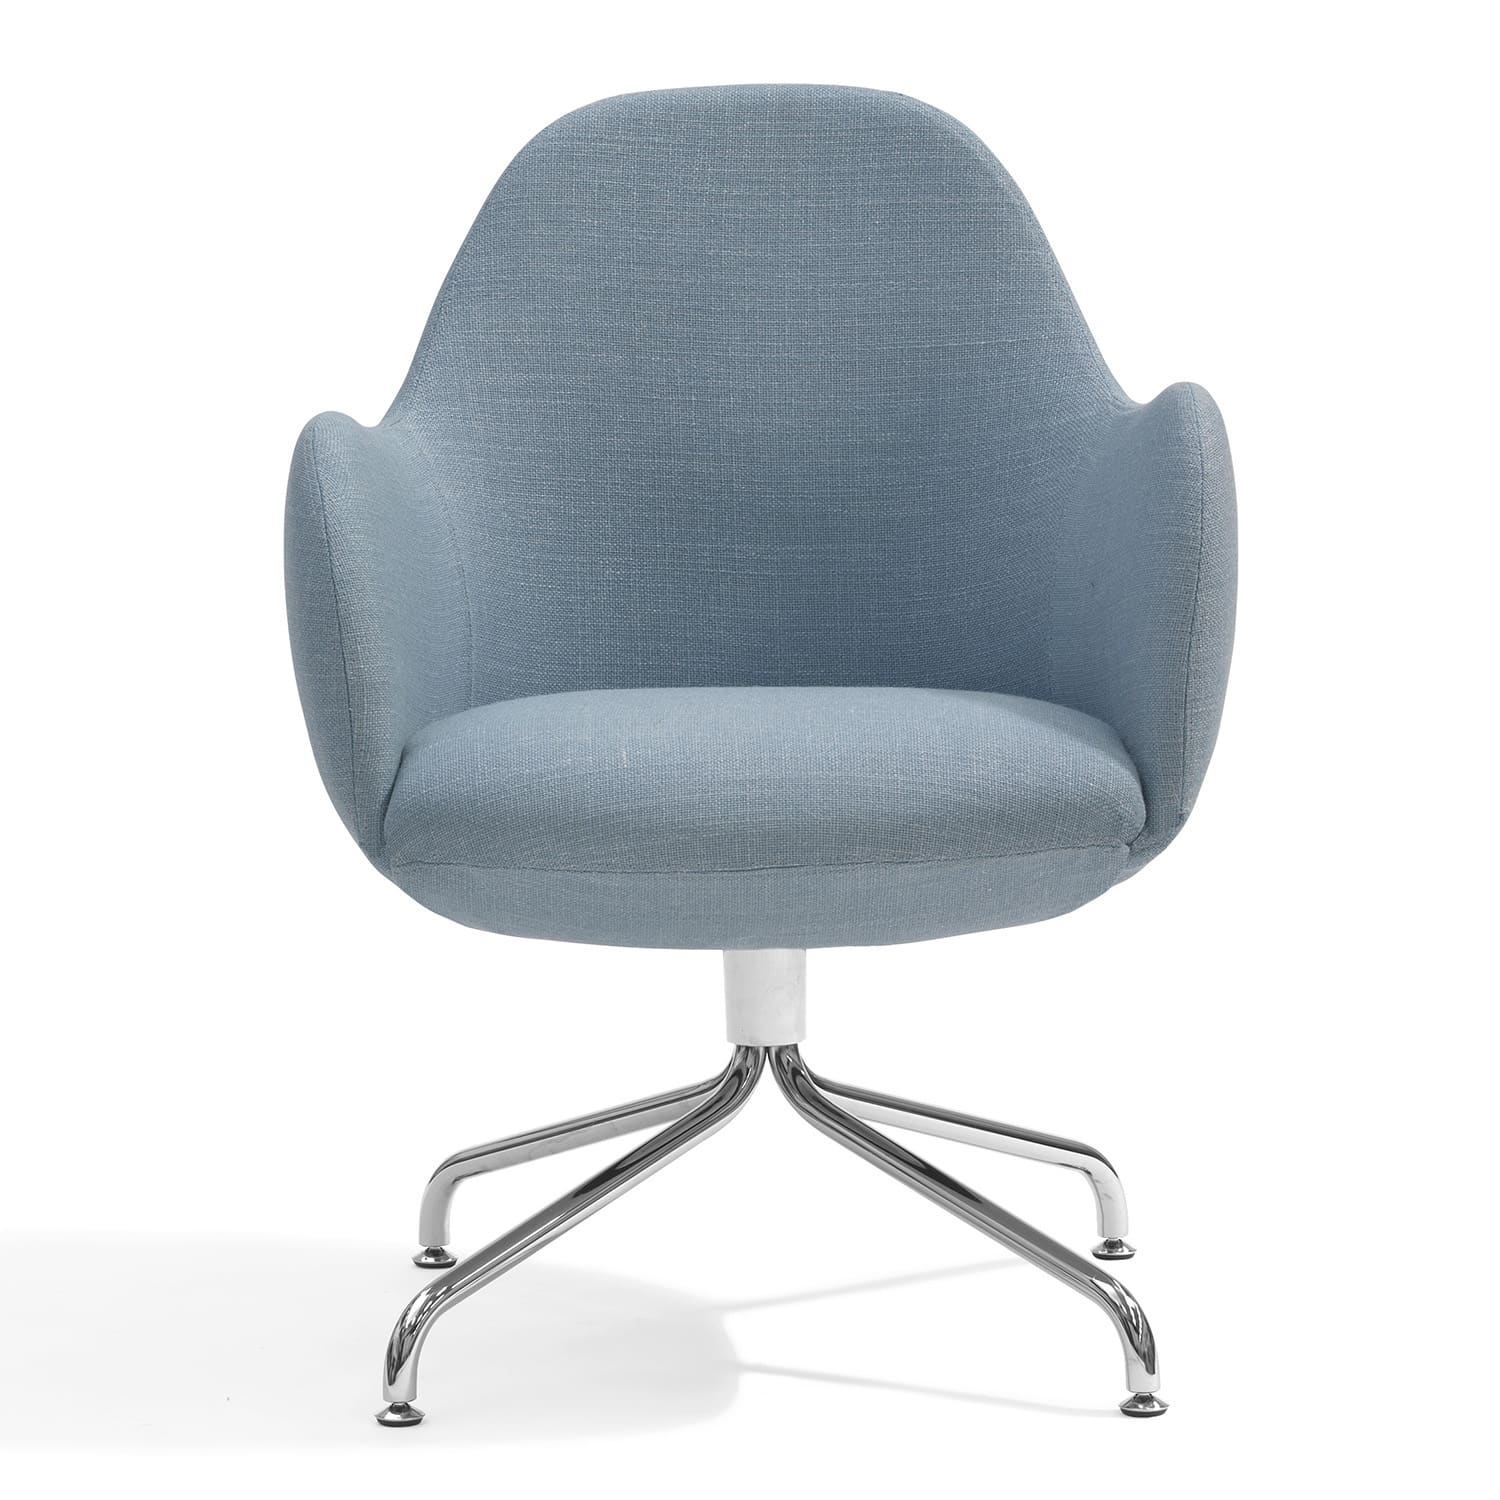 Wilmer bl station scandinavian design - Scandinavian chair ...